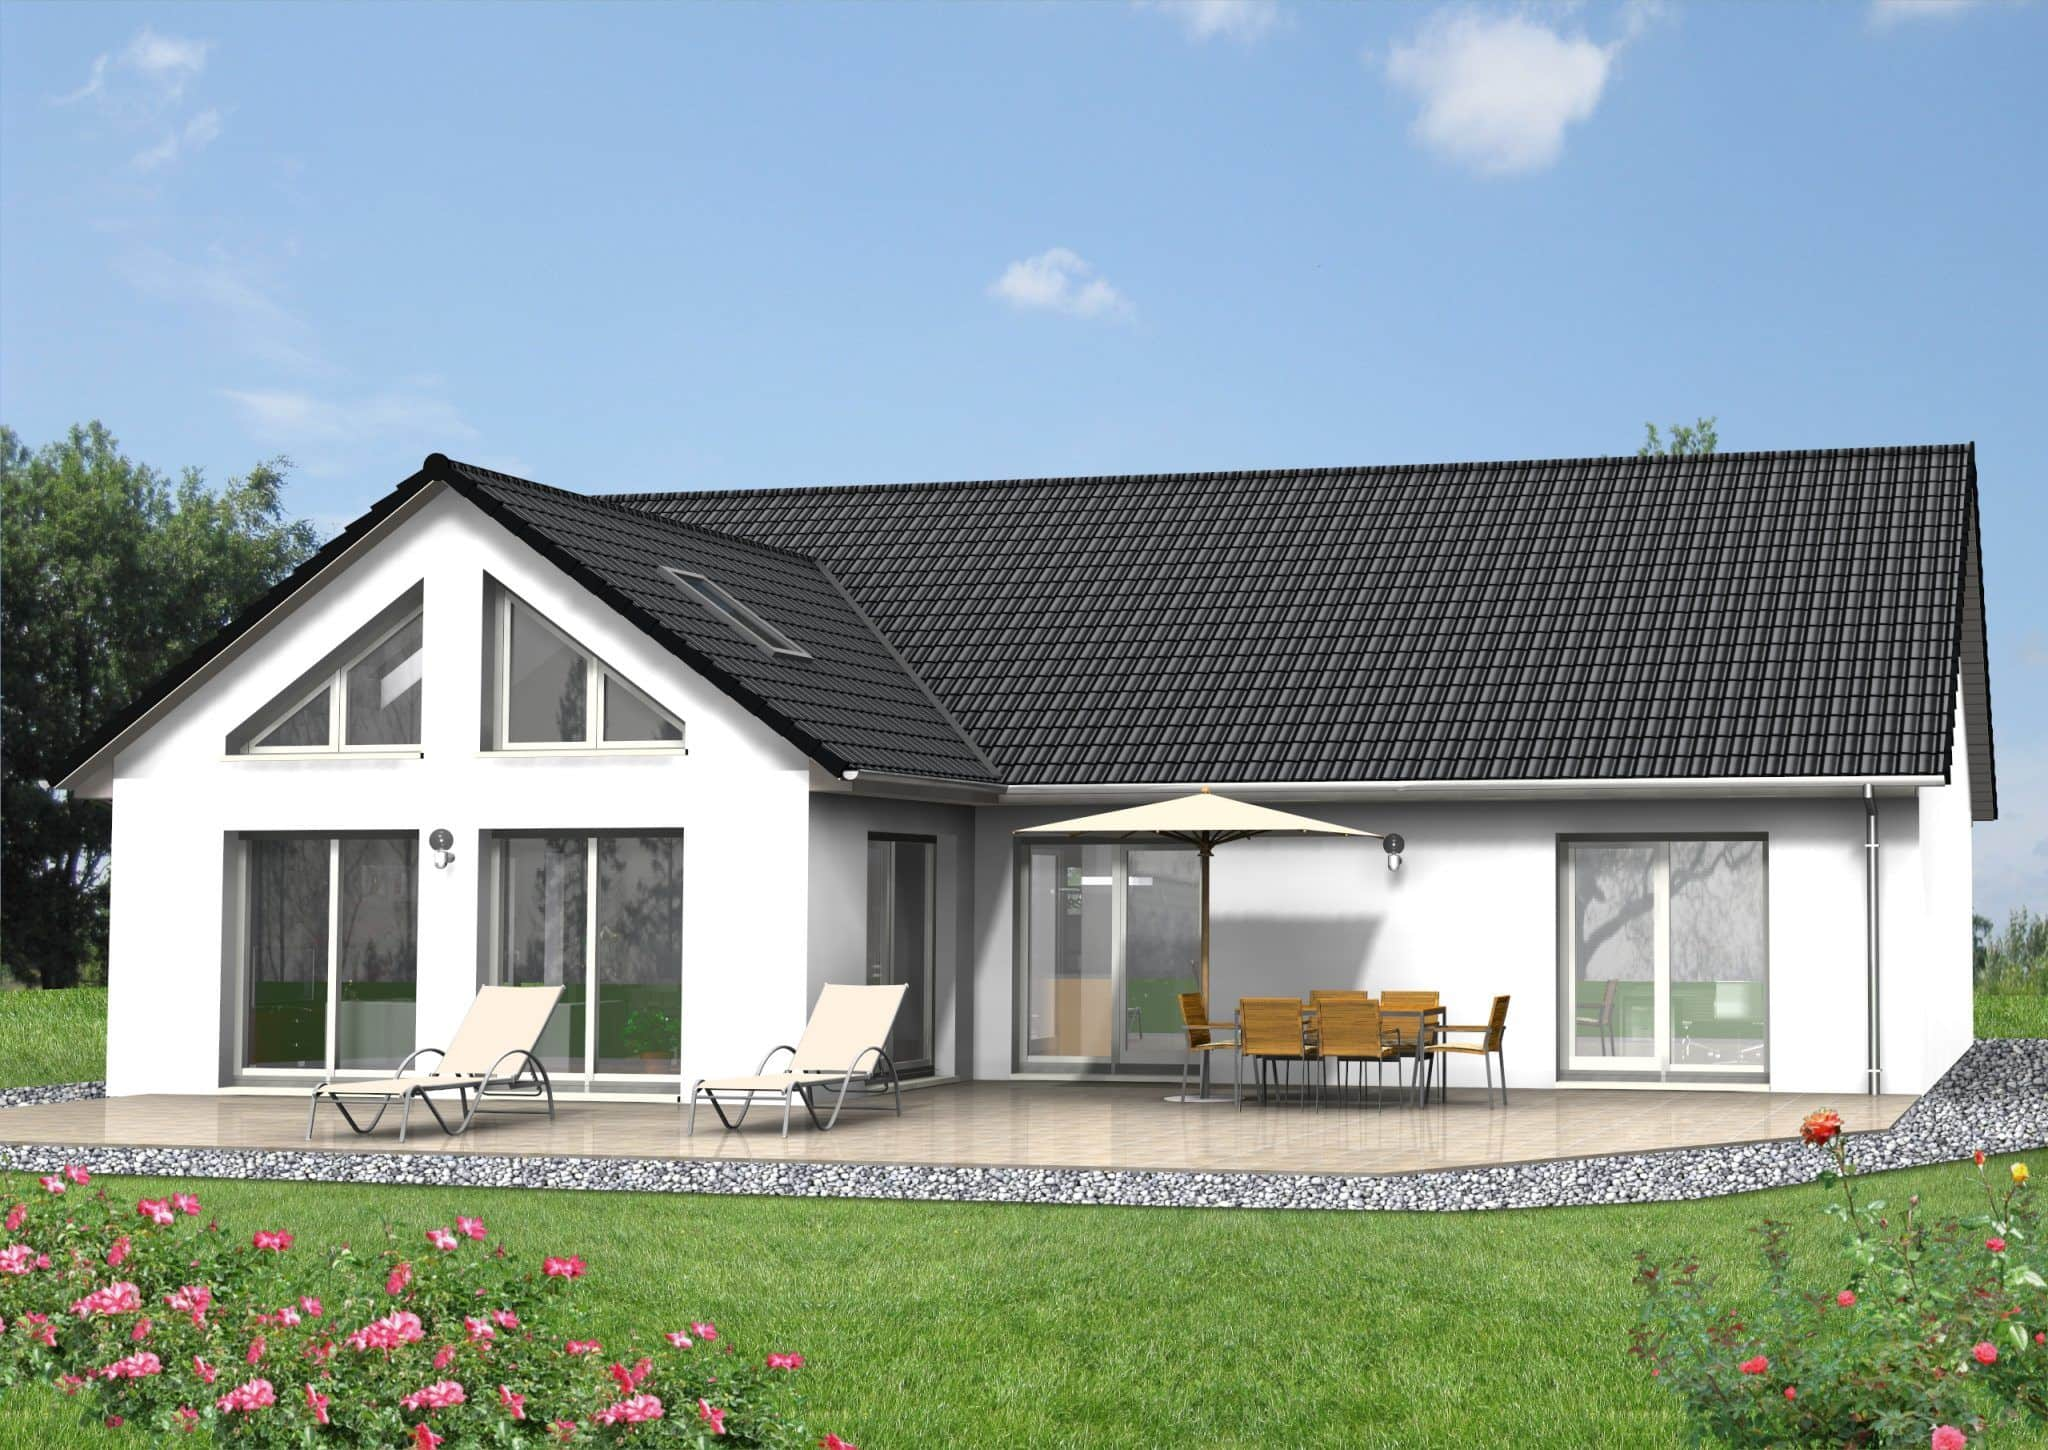 Bungalow Ideen Haus Ideen Bungalow So Individuell Wie Sie Selbst